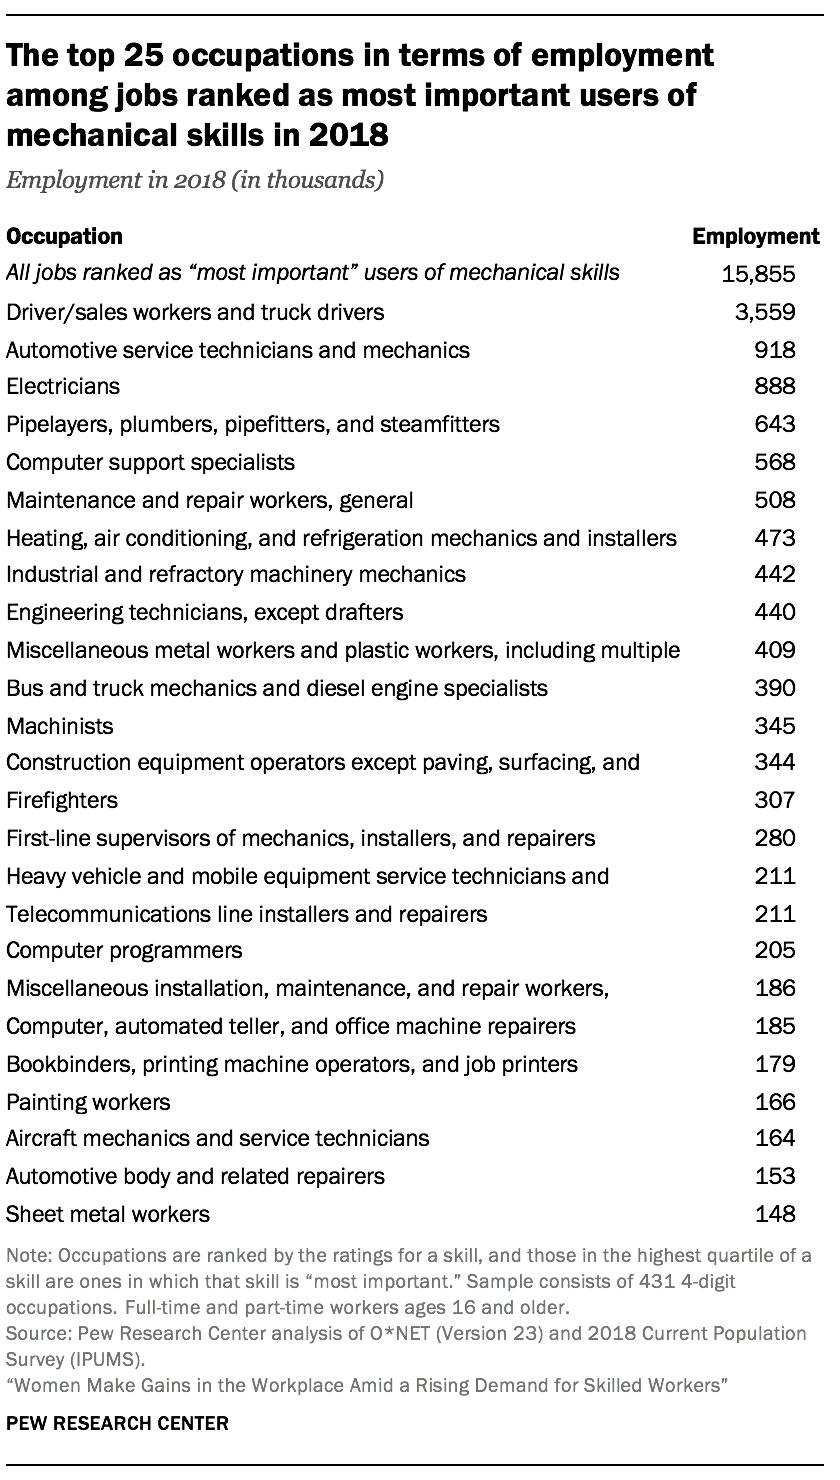 The top 25 occupations in terms of employment among jobs ranked as most important users of mechanical skills in 2018